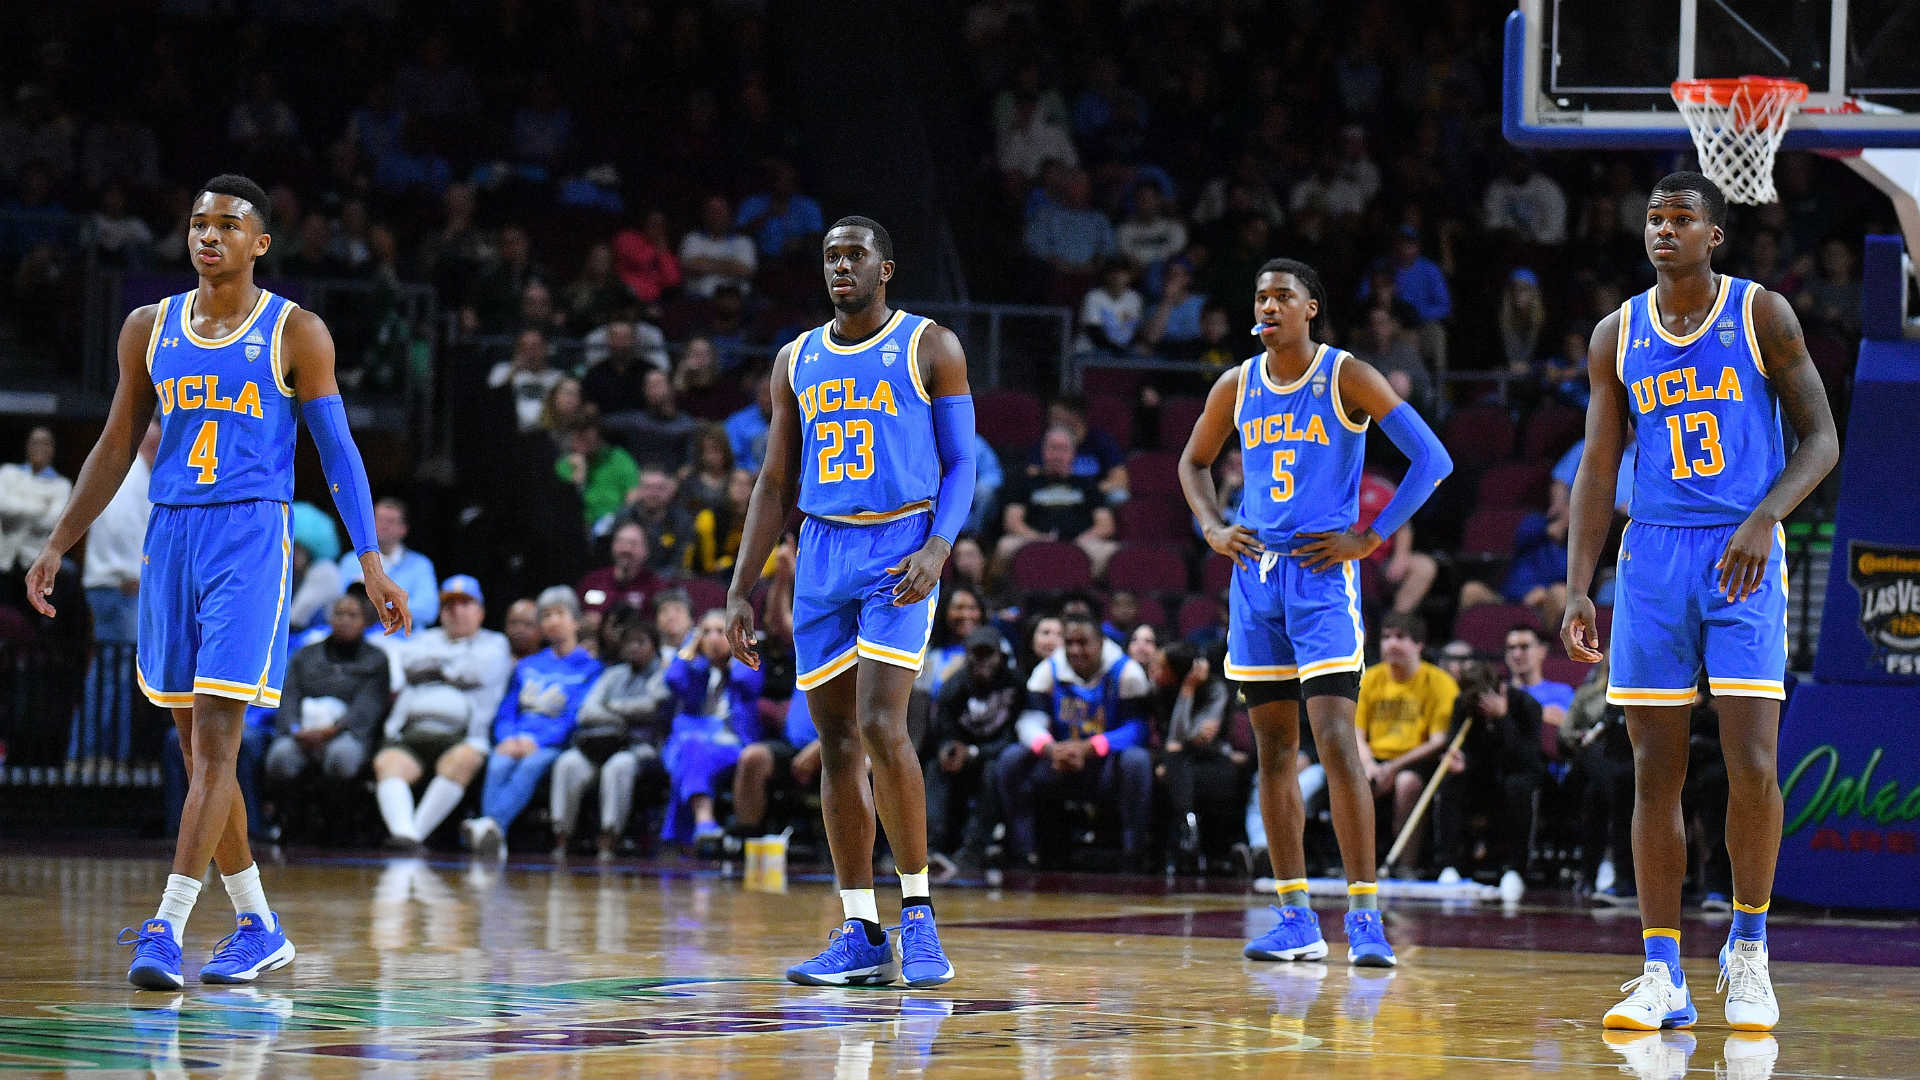 Three takeaways from UCLA's epic 9-point, last-minute comeback win at Oregon